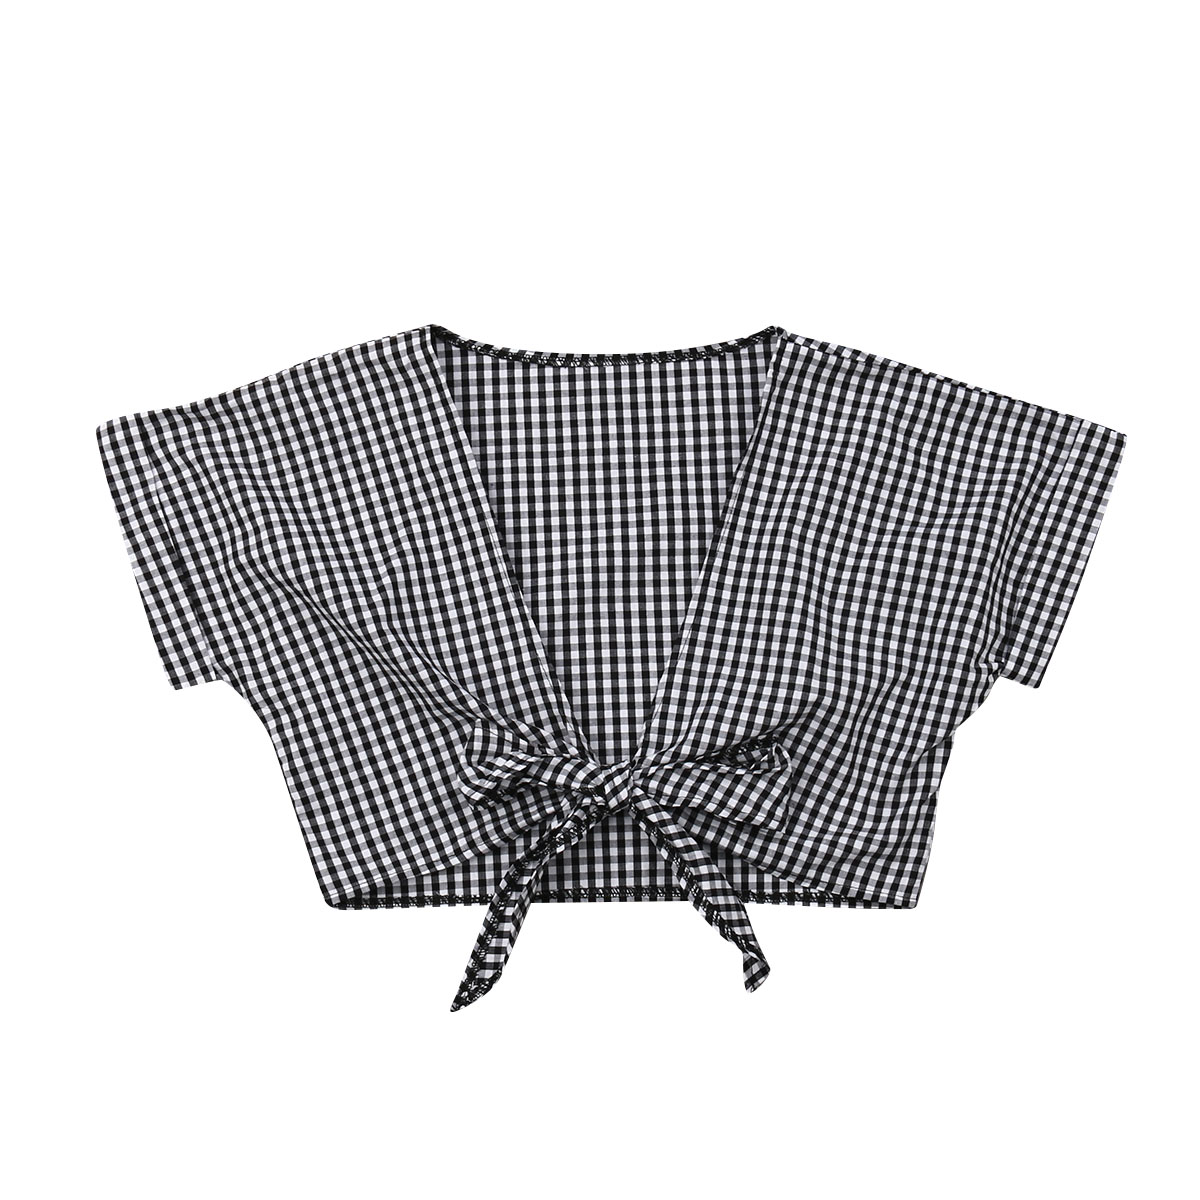 Blouses & Shirts 2019 Women Fashion Plaids V-neck Short Blouse Lady Girls Casual Top Blouses Ladies Slim Crop Tops Shirts We Take Customers As Our Gods